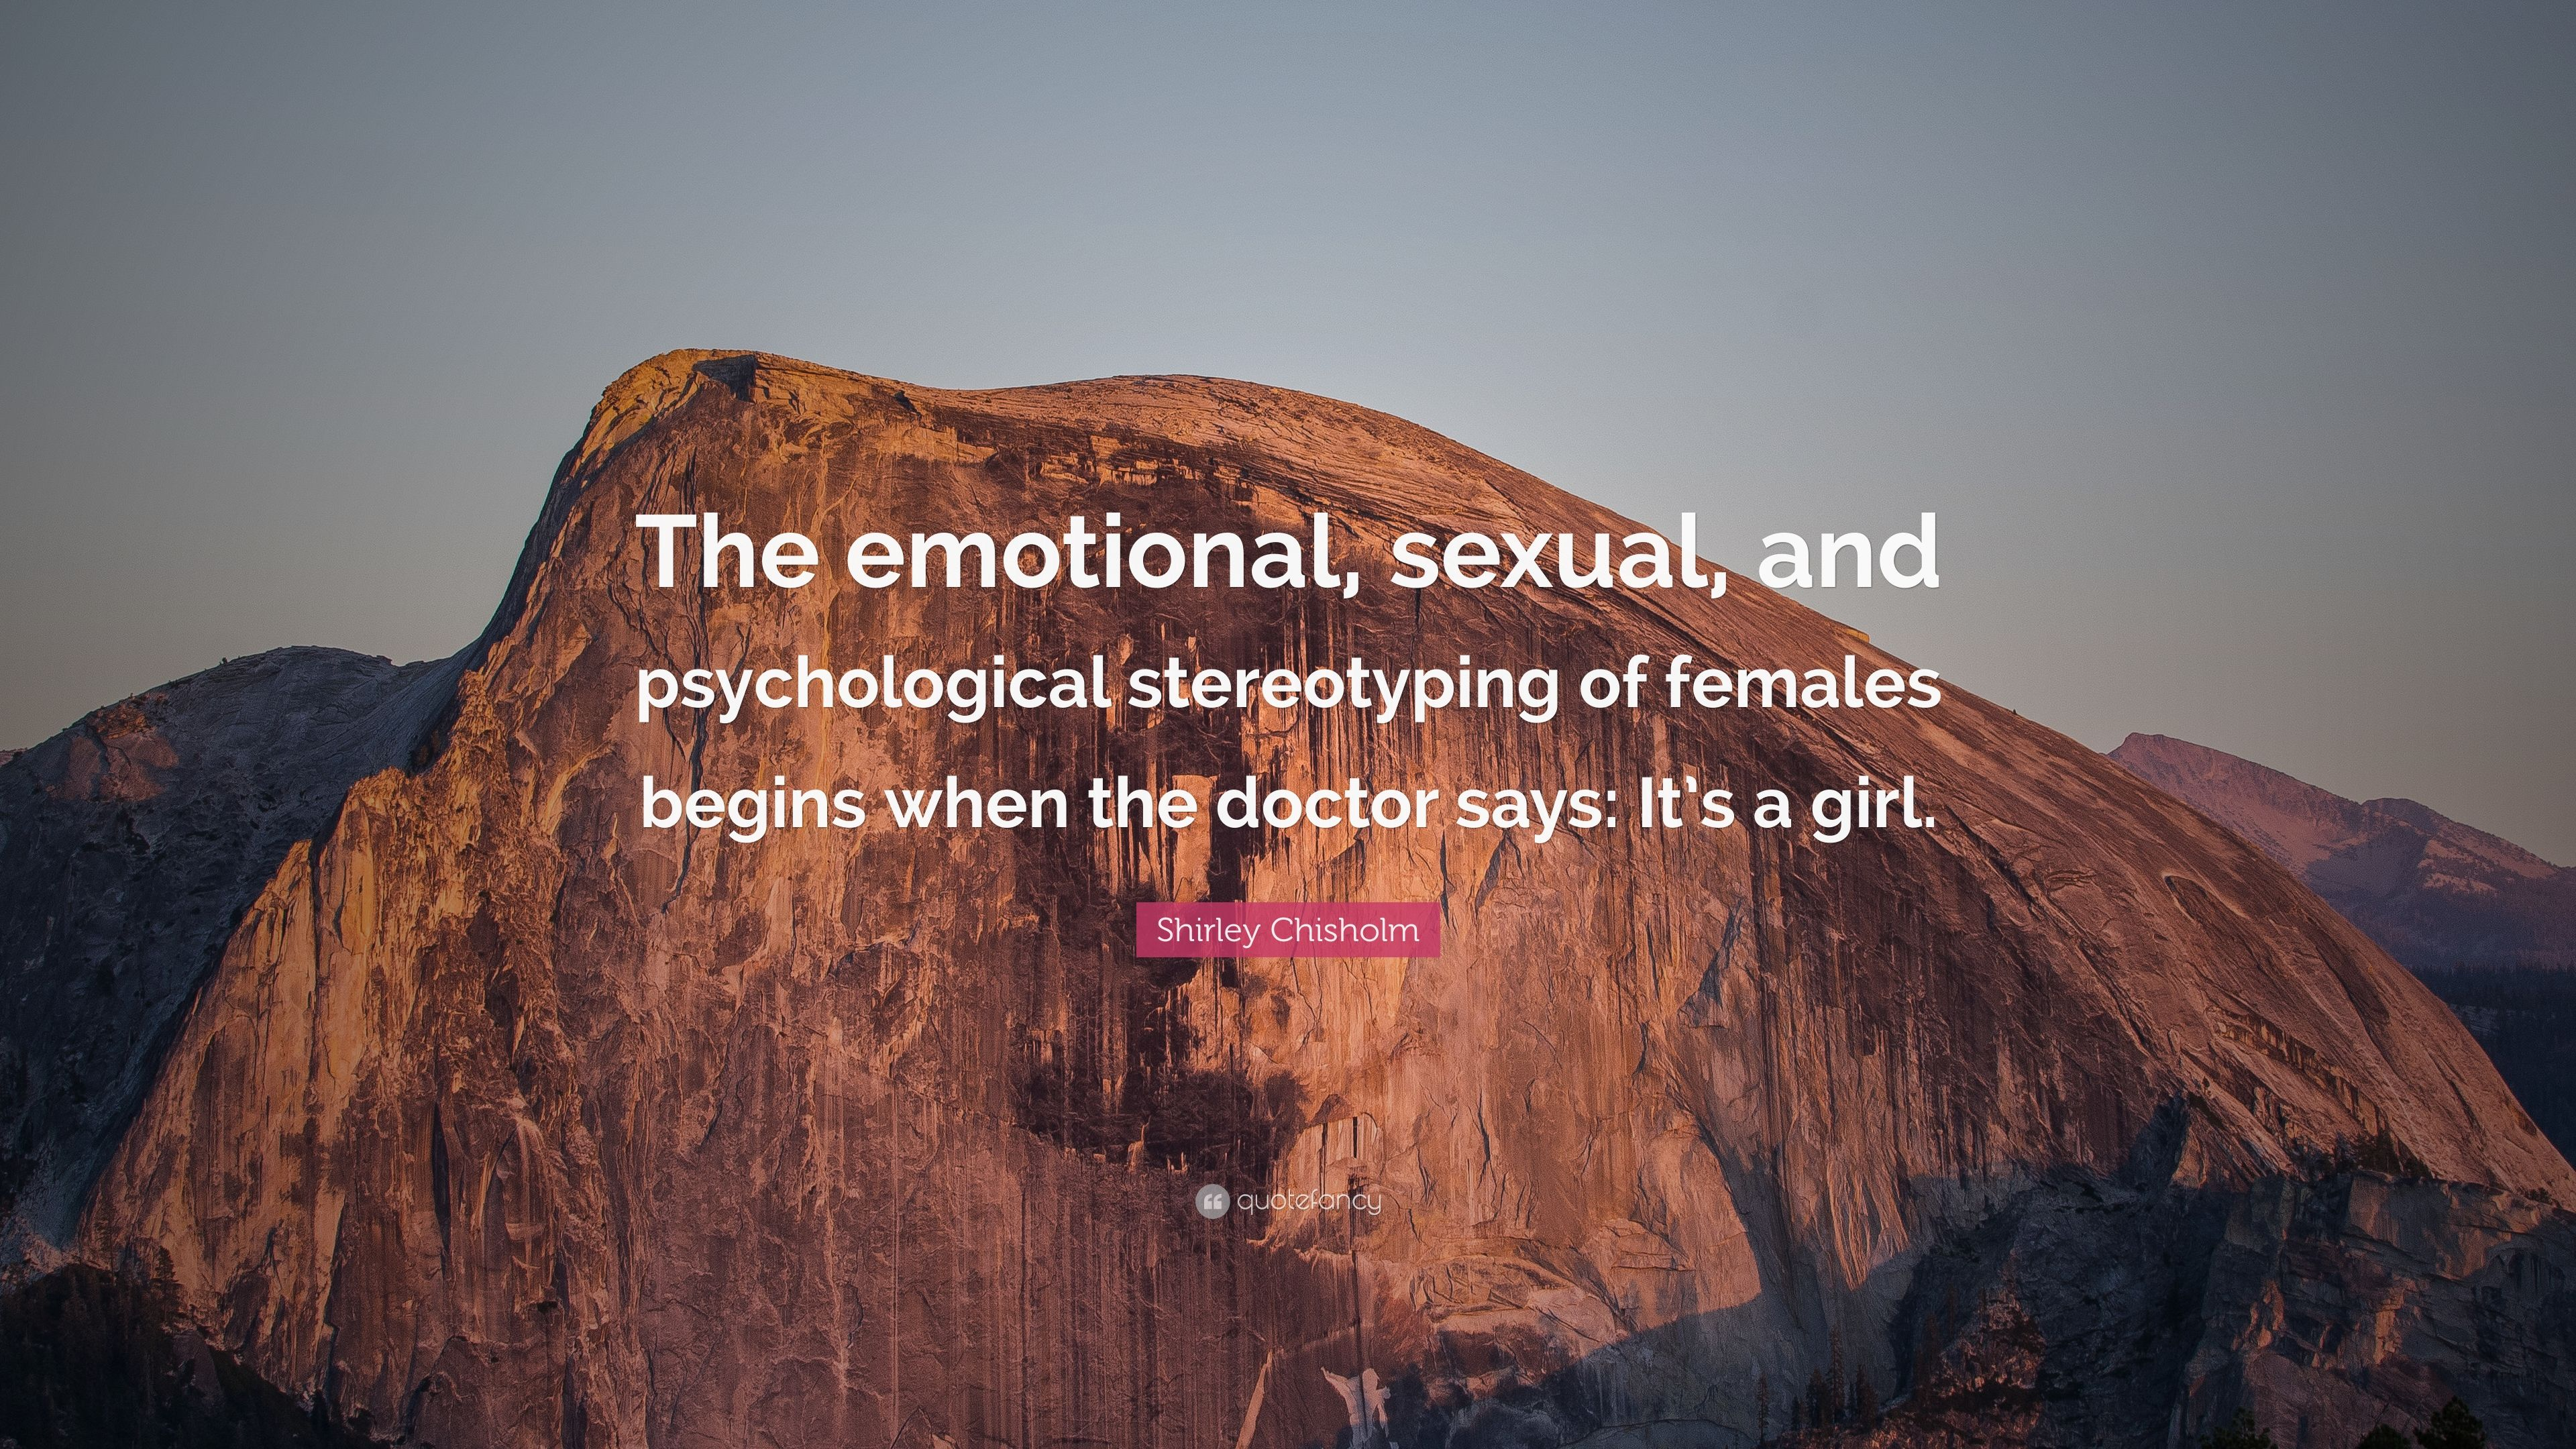 The emotional sexual and psychological stereotyping of females